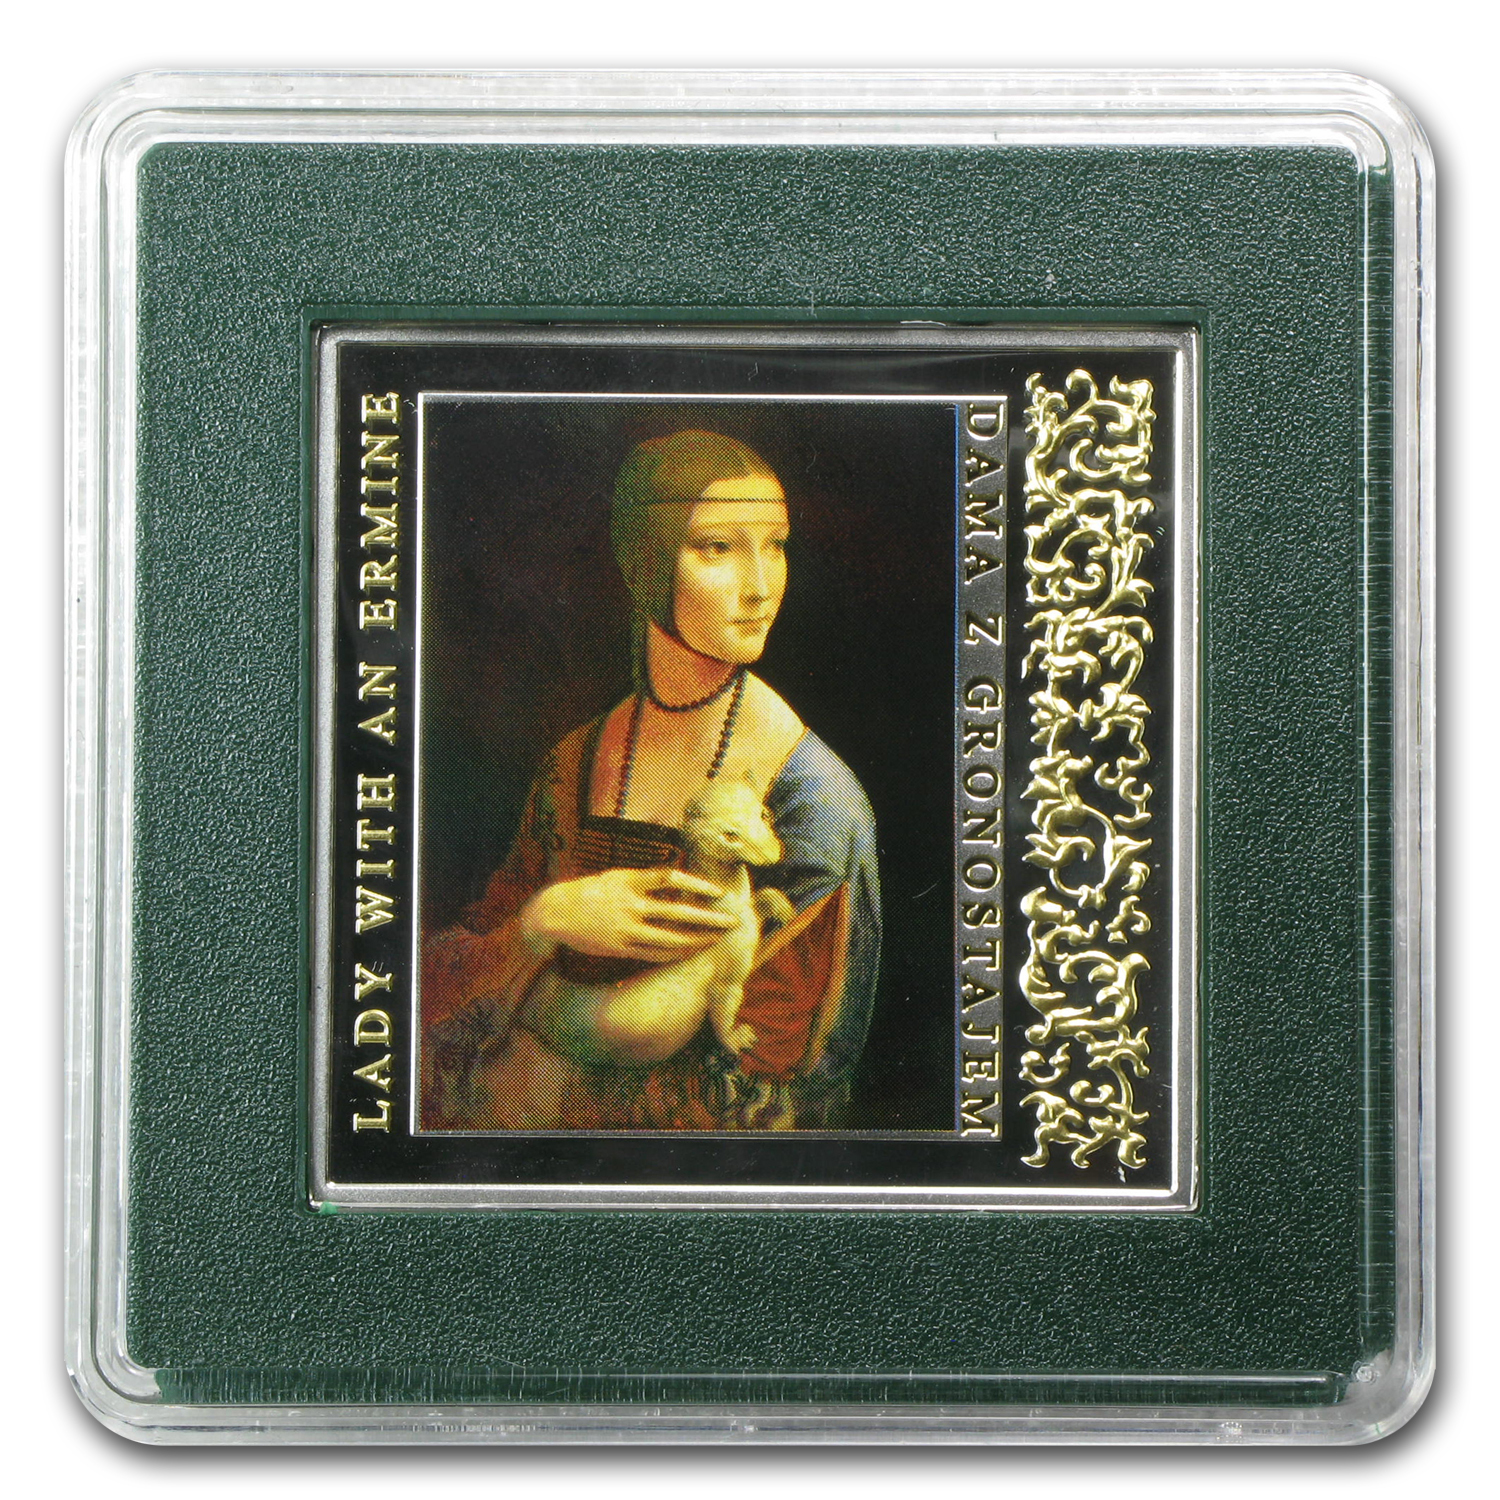 2012 Niue Proof Silver $1 Leonardo da VinciLady with an Ermine